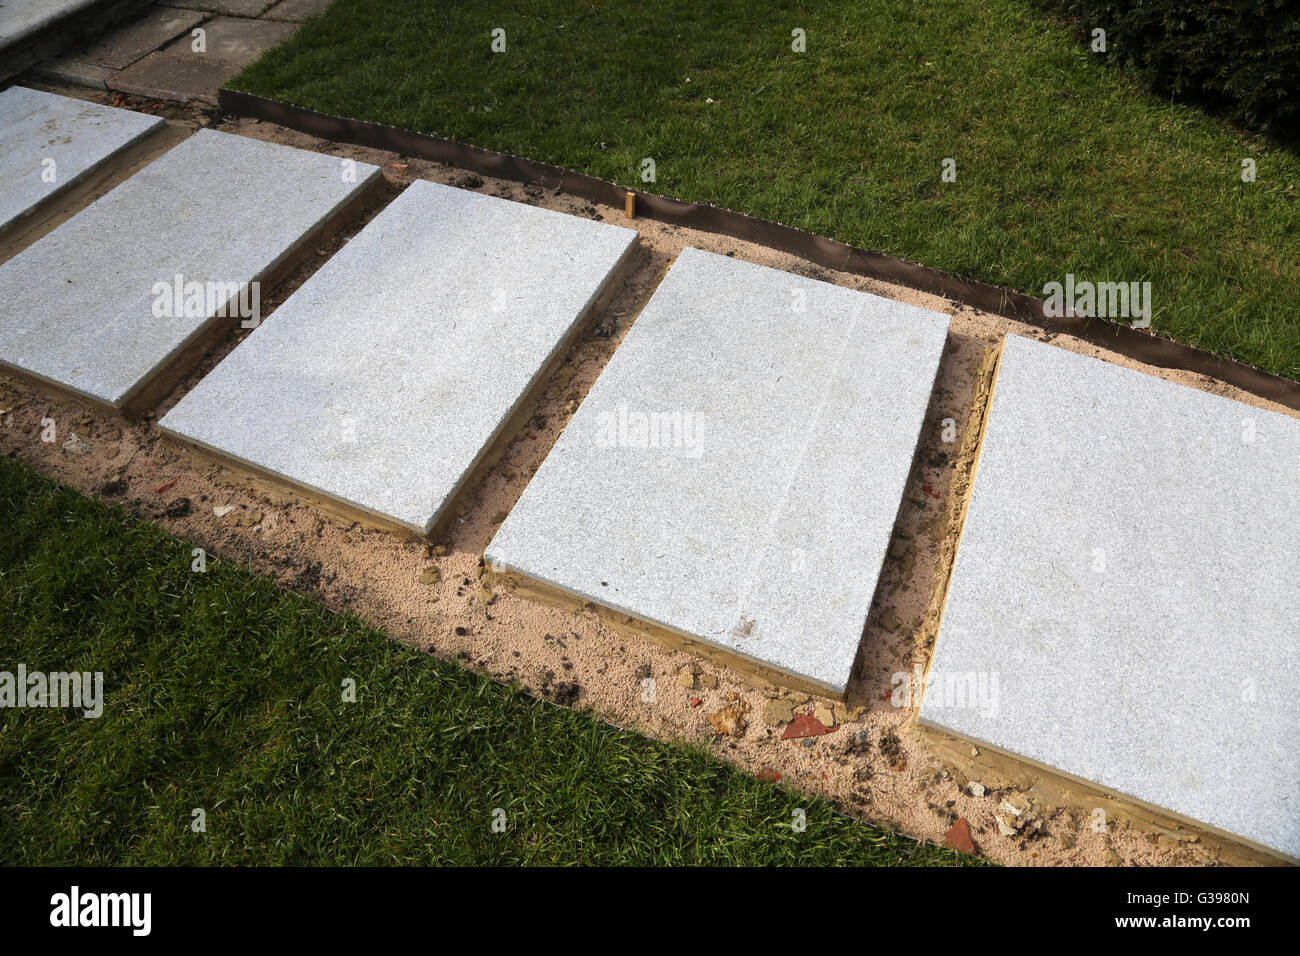 Superb Laying New Garden Path New Concrete Slabs Surrey England